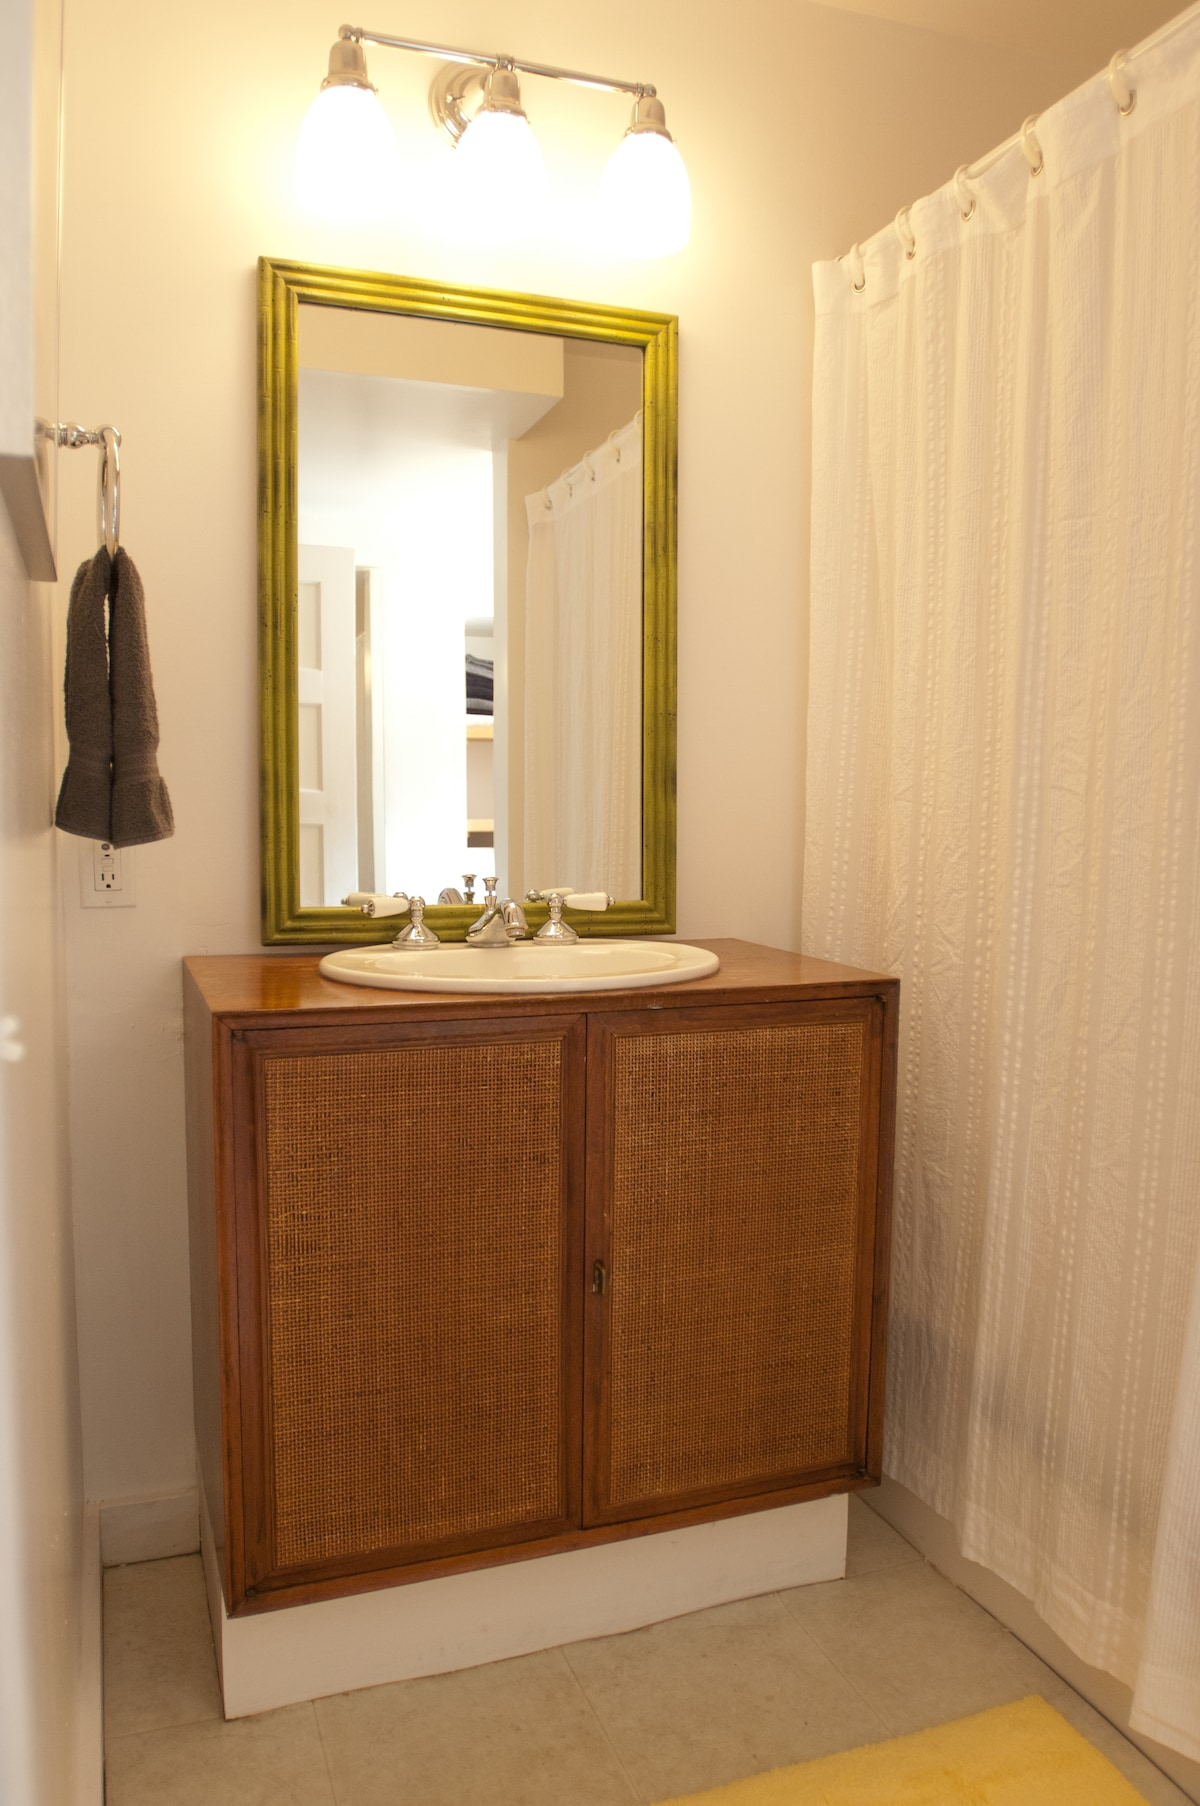 Bathroom with shower and tub.